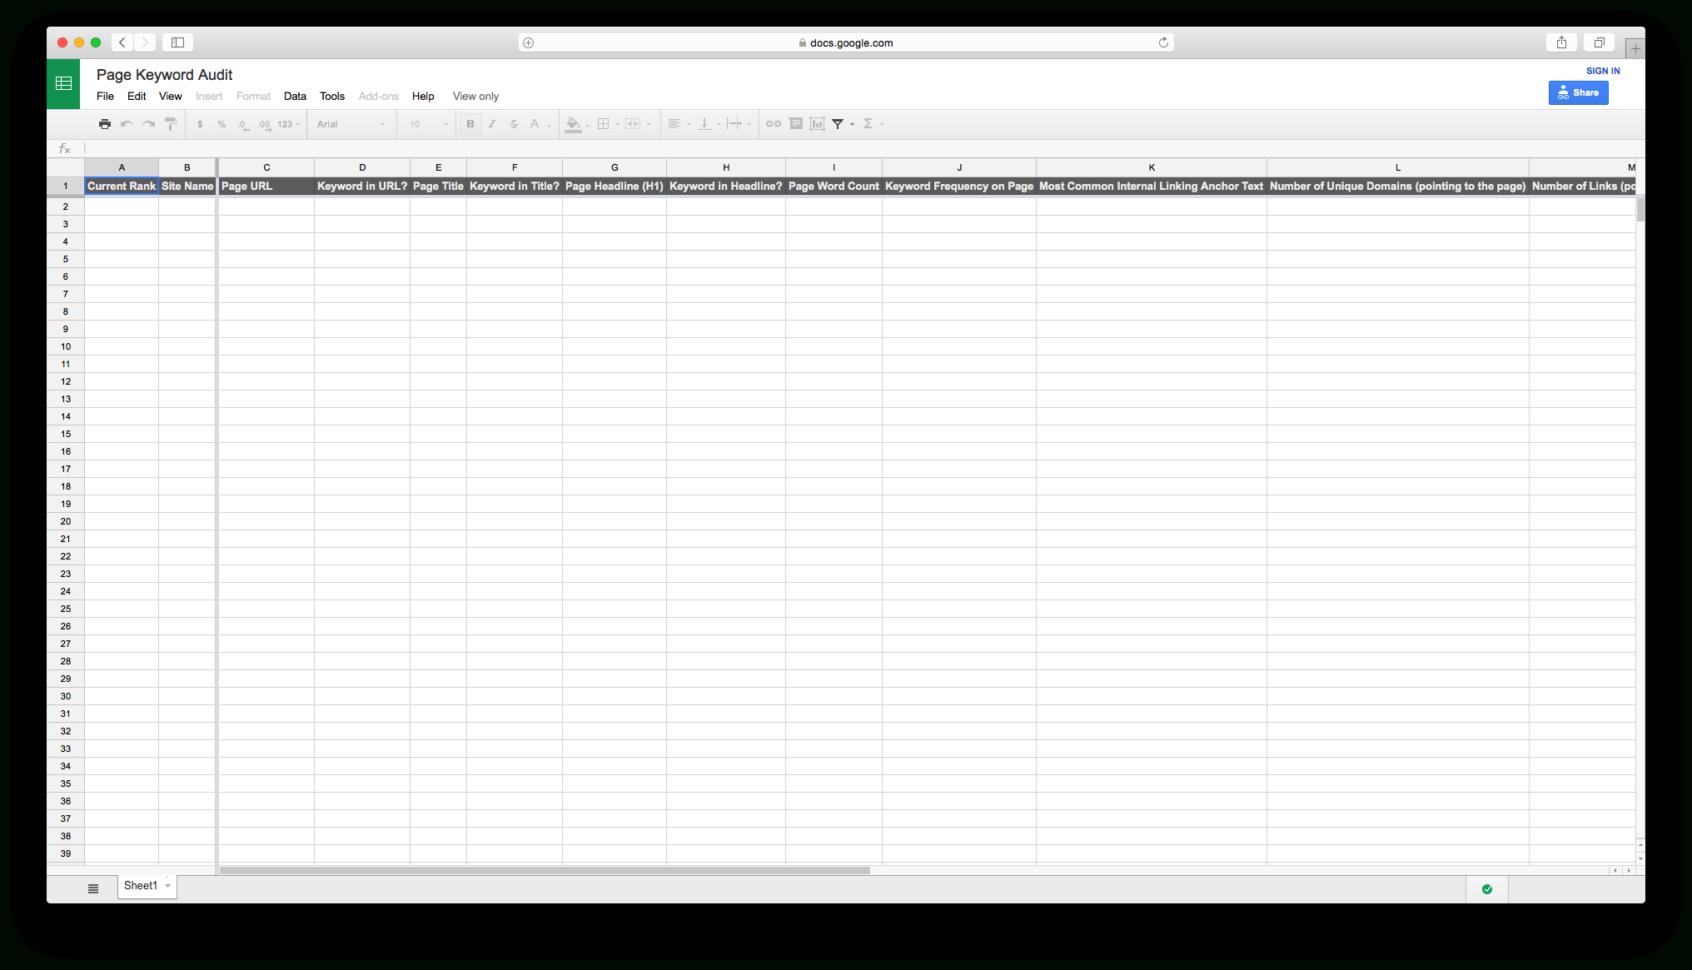 Internal Audit Tracking Spreadsheet For Keyword Tracking Spreadsheet • Kai Davis